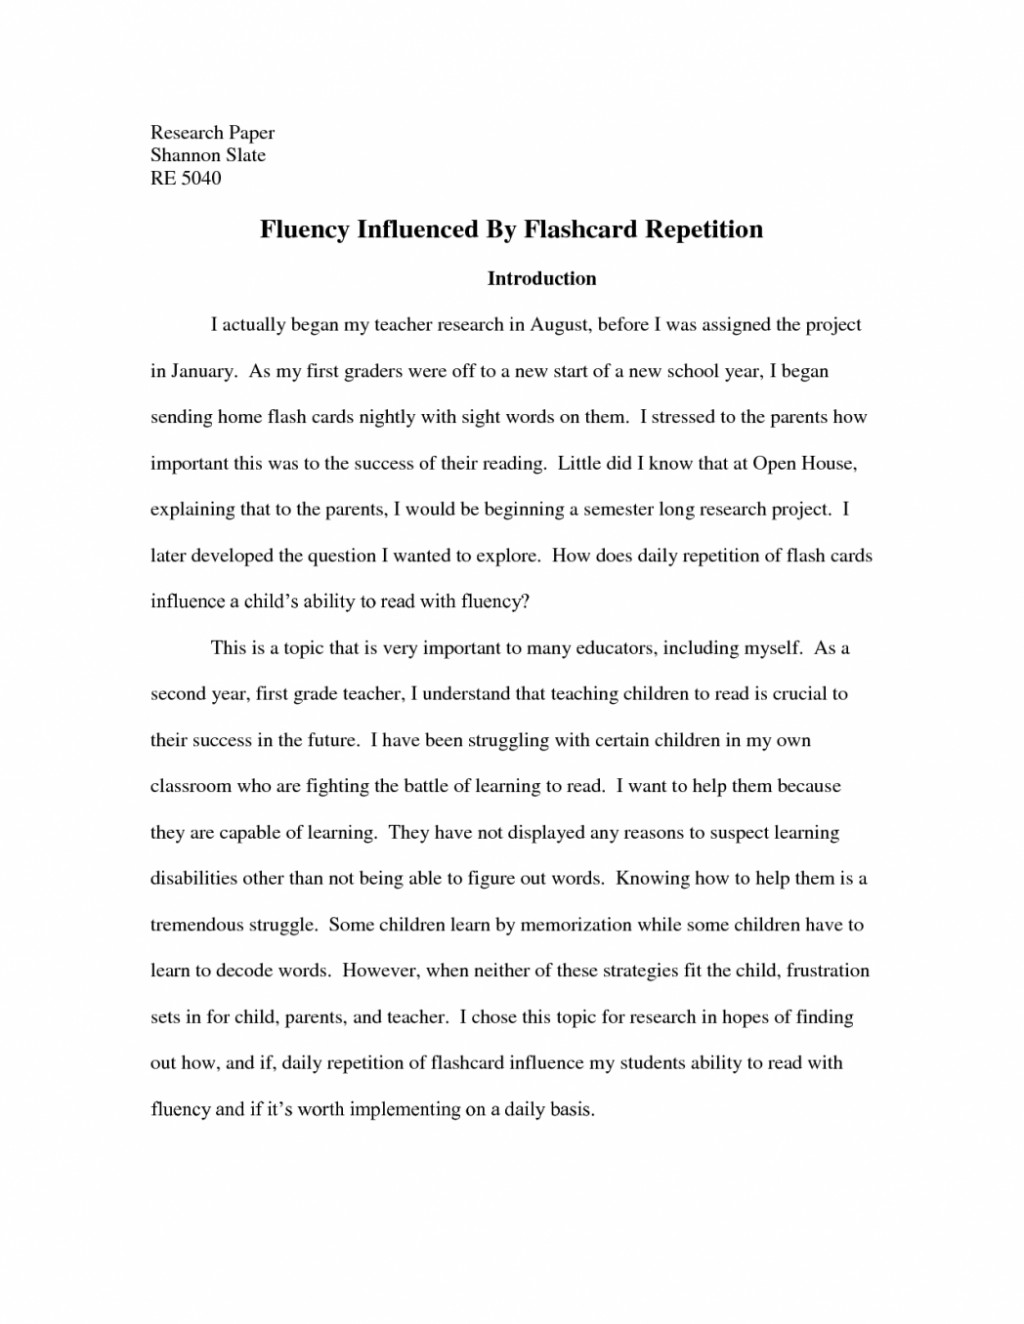 009 Words To Start Off Essay Begin Paragraph In An Argumentative Conclusion Persuasive End The First Body Sentence 1048x1356 Example Excellent How Write A Good About Your Life 3 Large